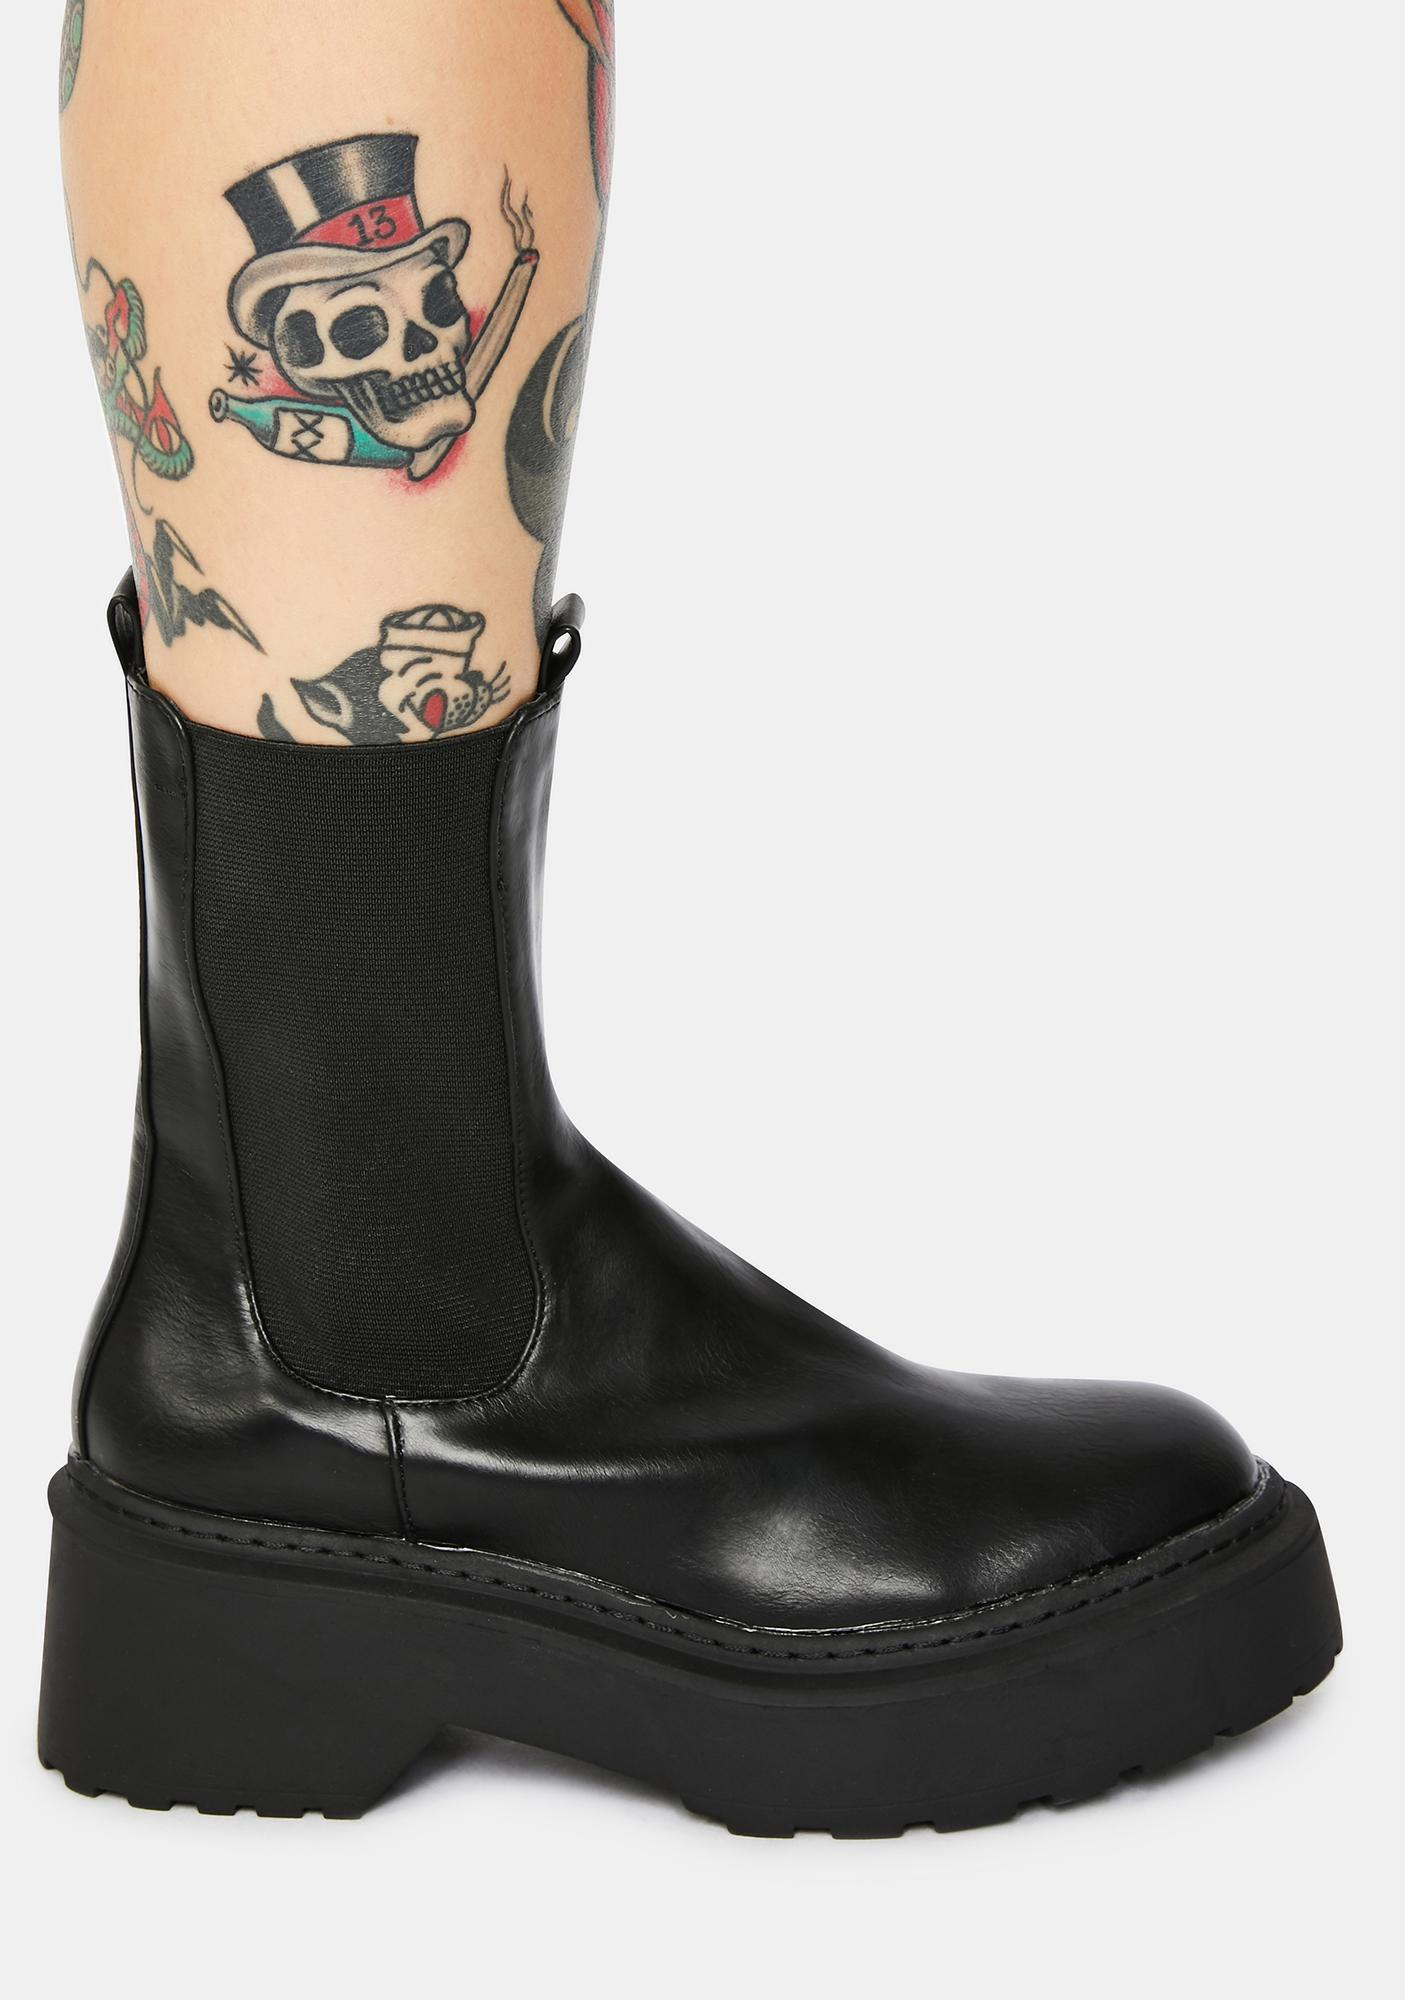 4TH & RECKLESS Edie Chelsea Boots